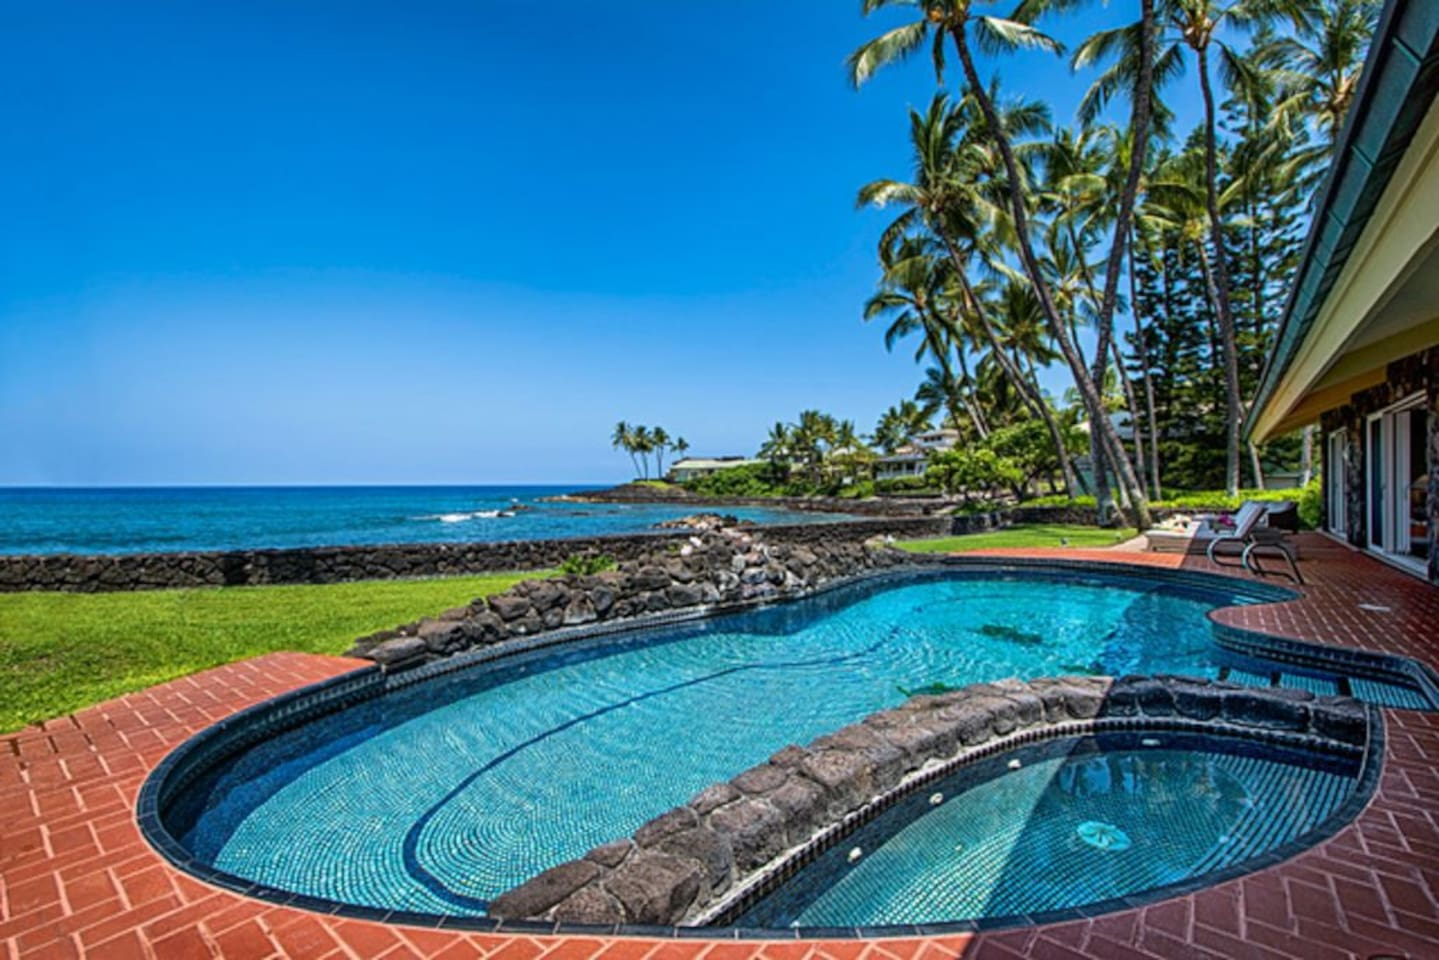 Oceanfront with a Pool